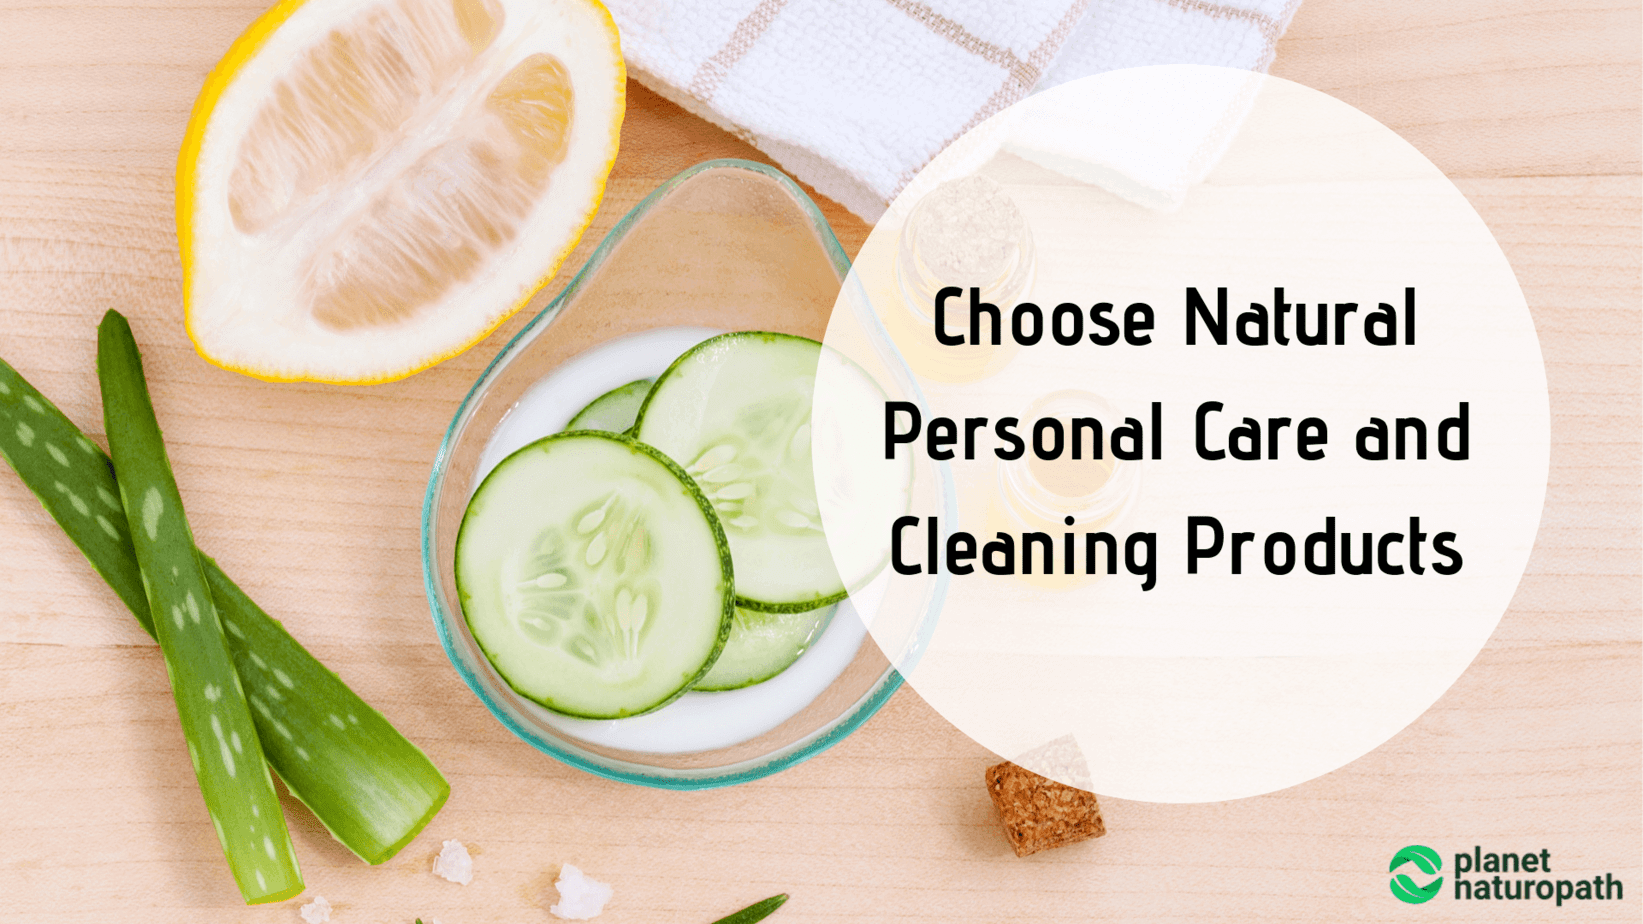 Choose-Natural-Personal-Care-and-Cleaning-Products